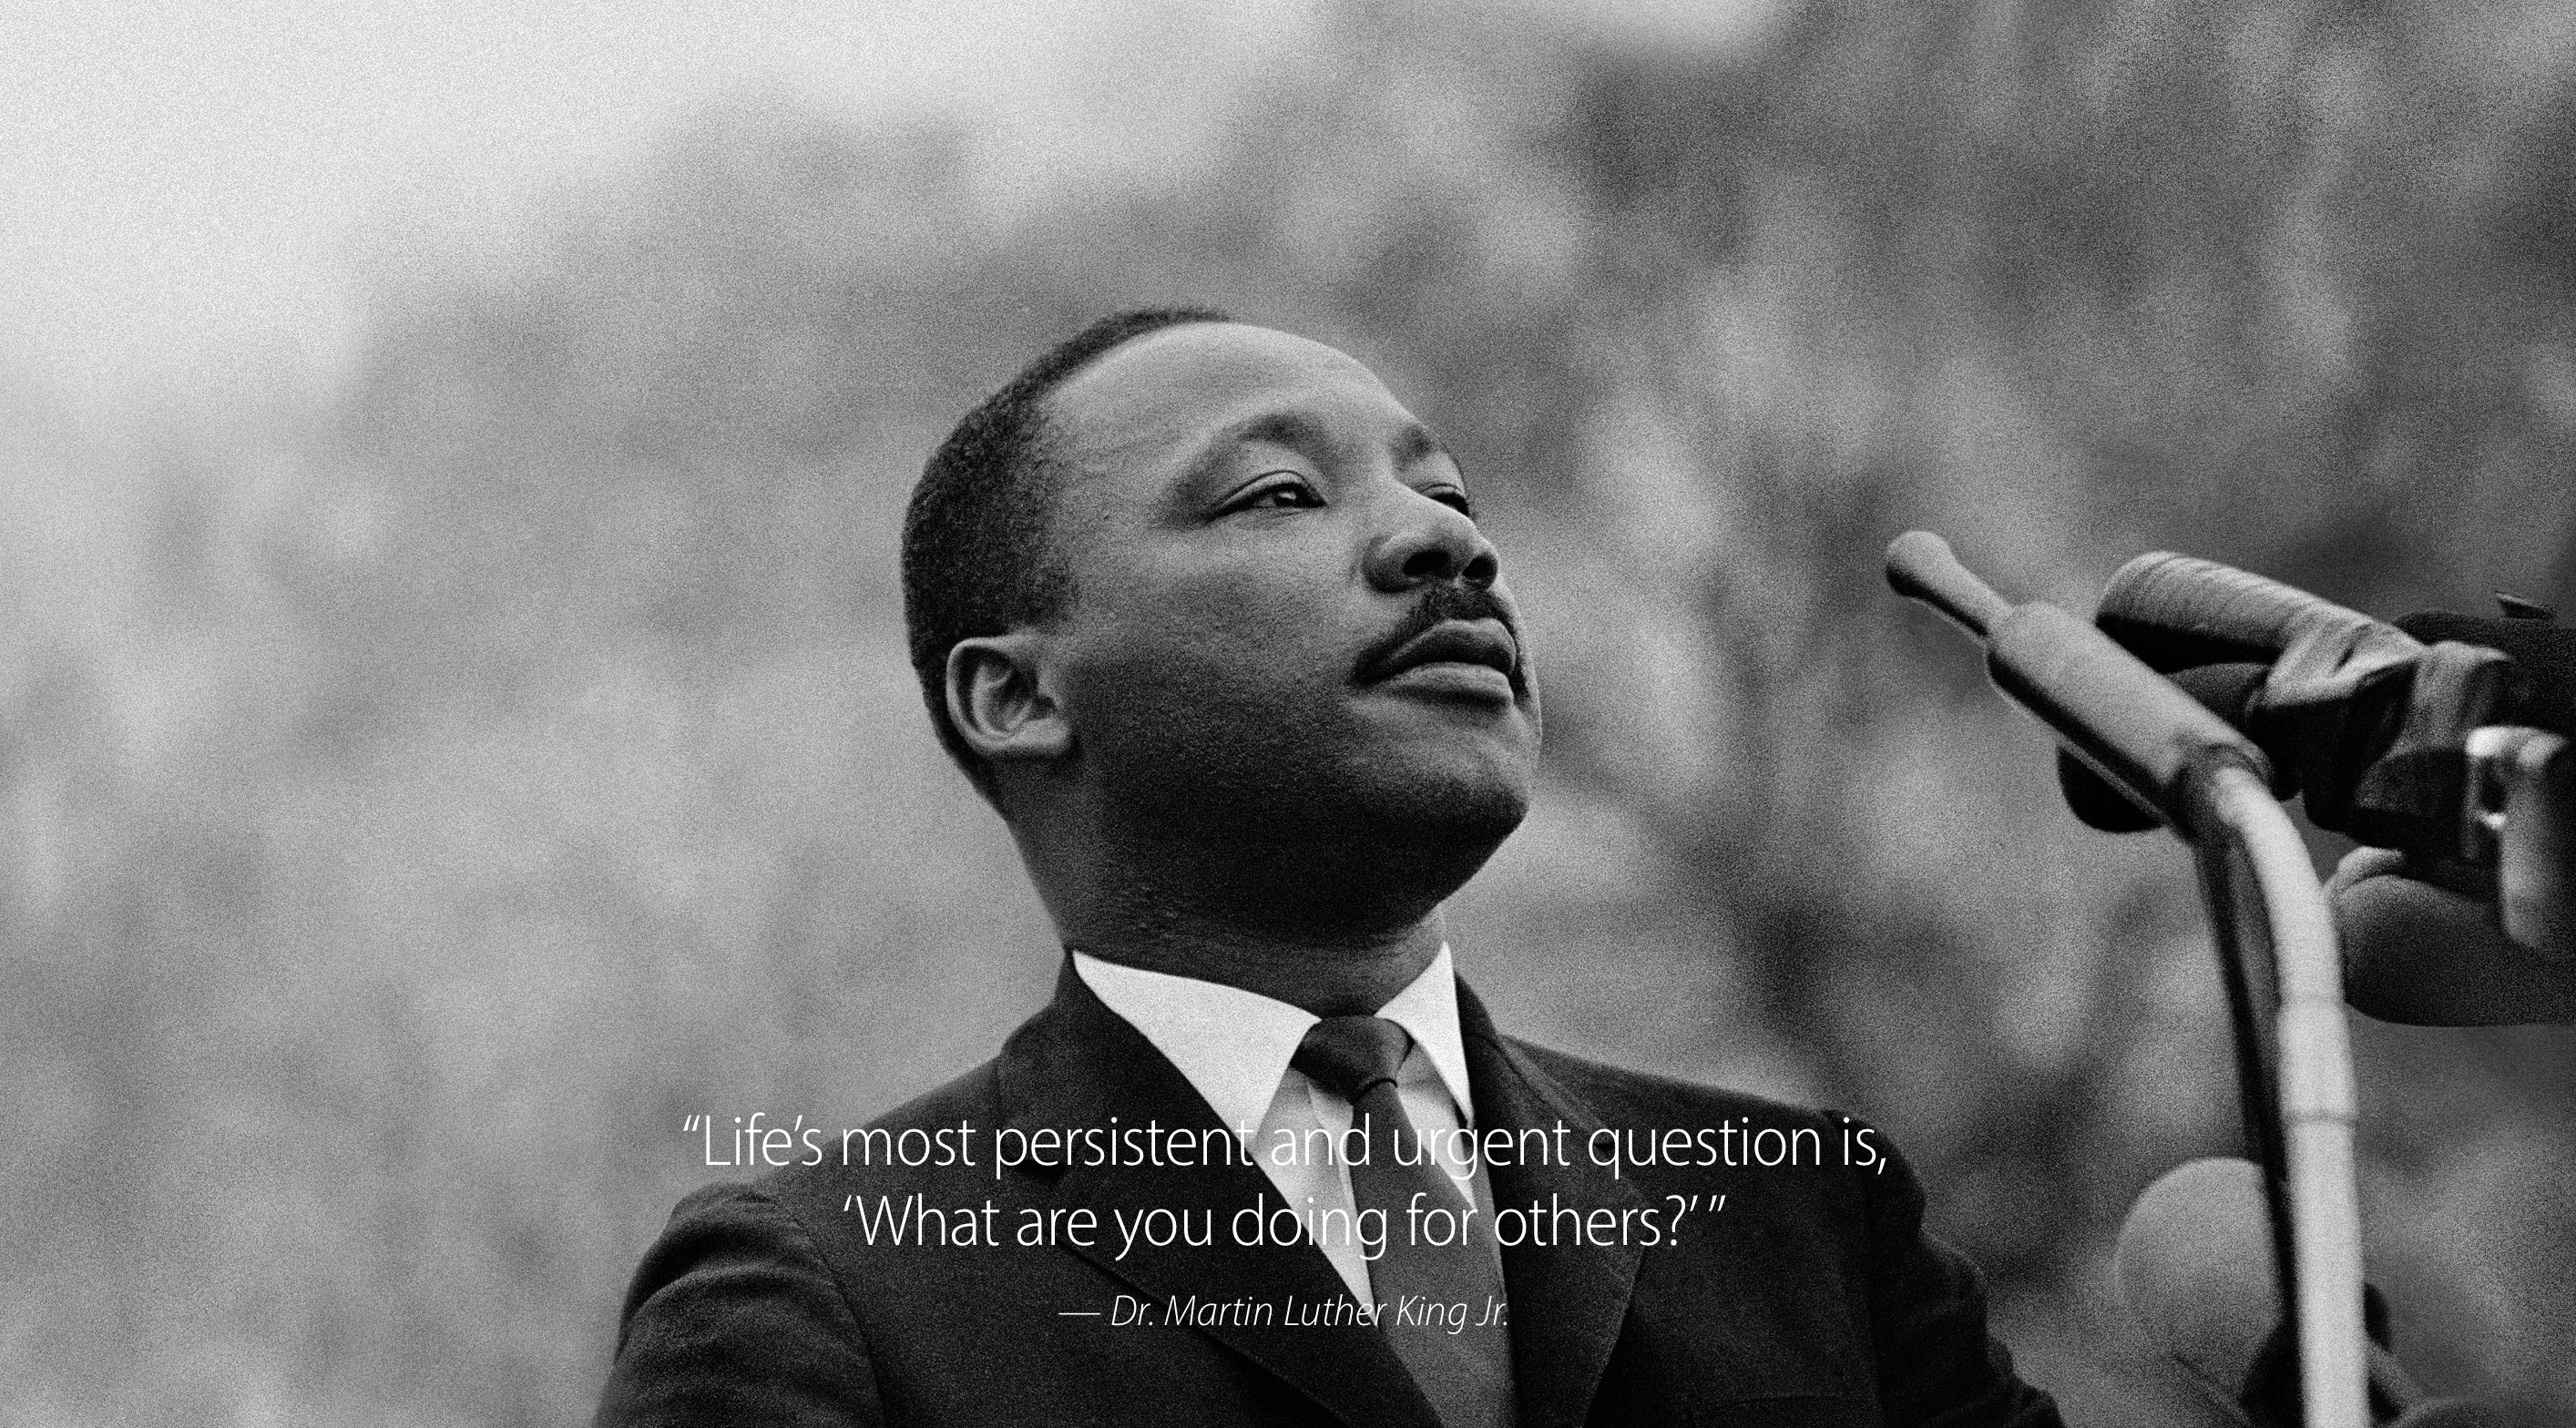 Get An Inspirational Martin Luther King Jr Quote Wallpaper From